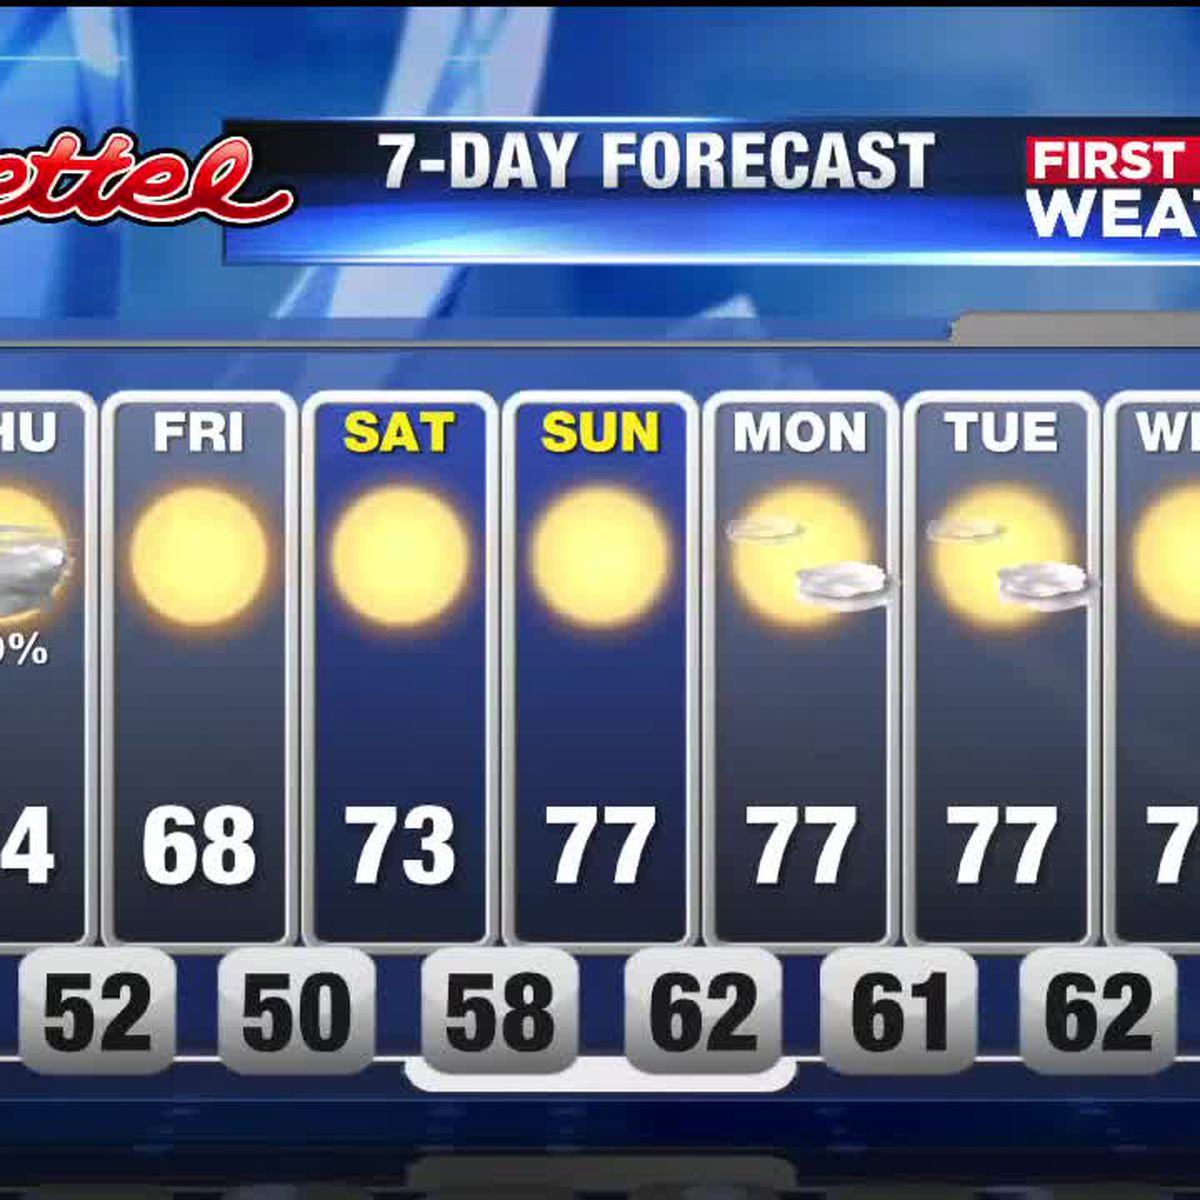 First Alert Weather: The cold front has arrived and cooler weather is on the way!